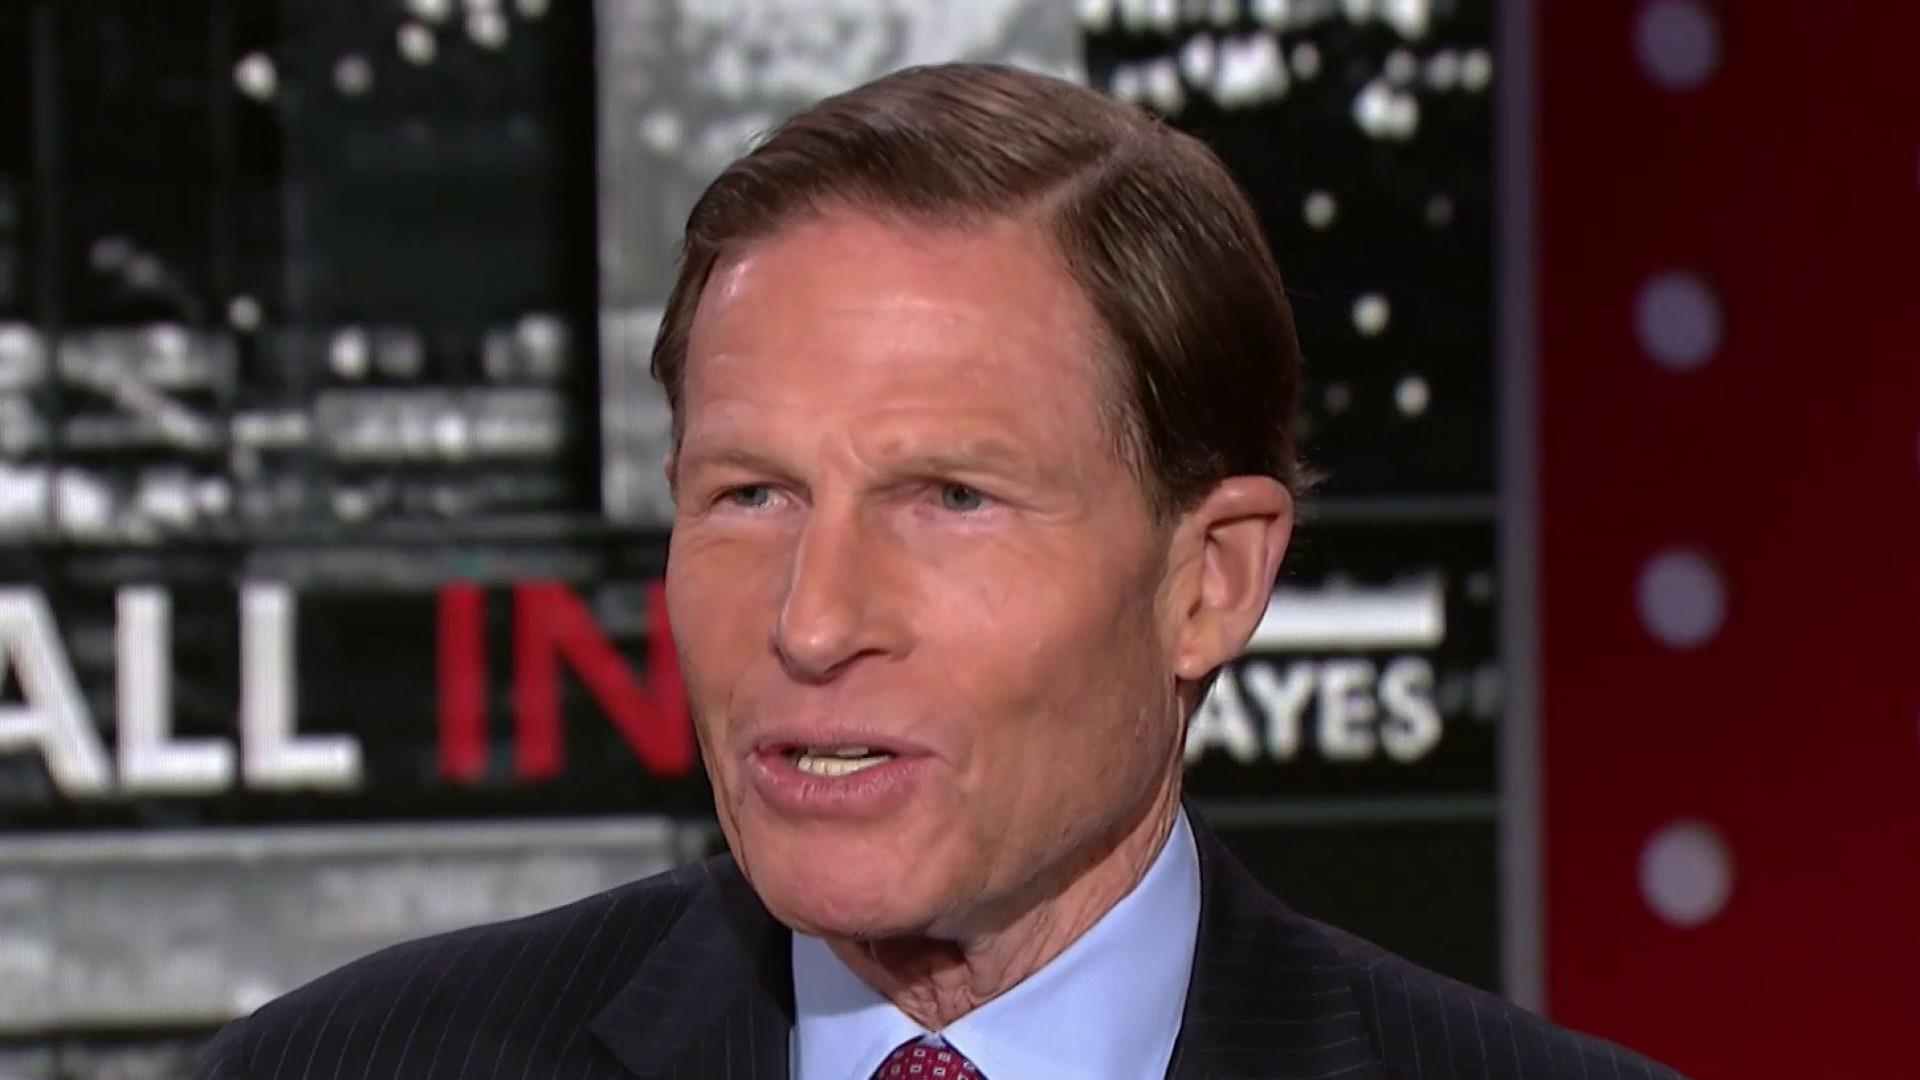 Sen. Blumenthal: 'Our own military' lacks clear strategy on Syria